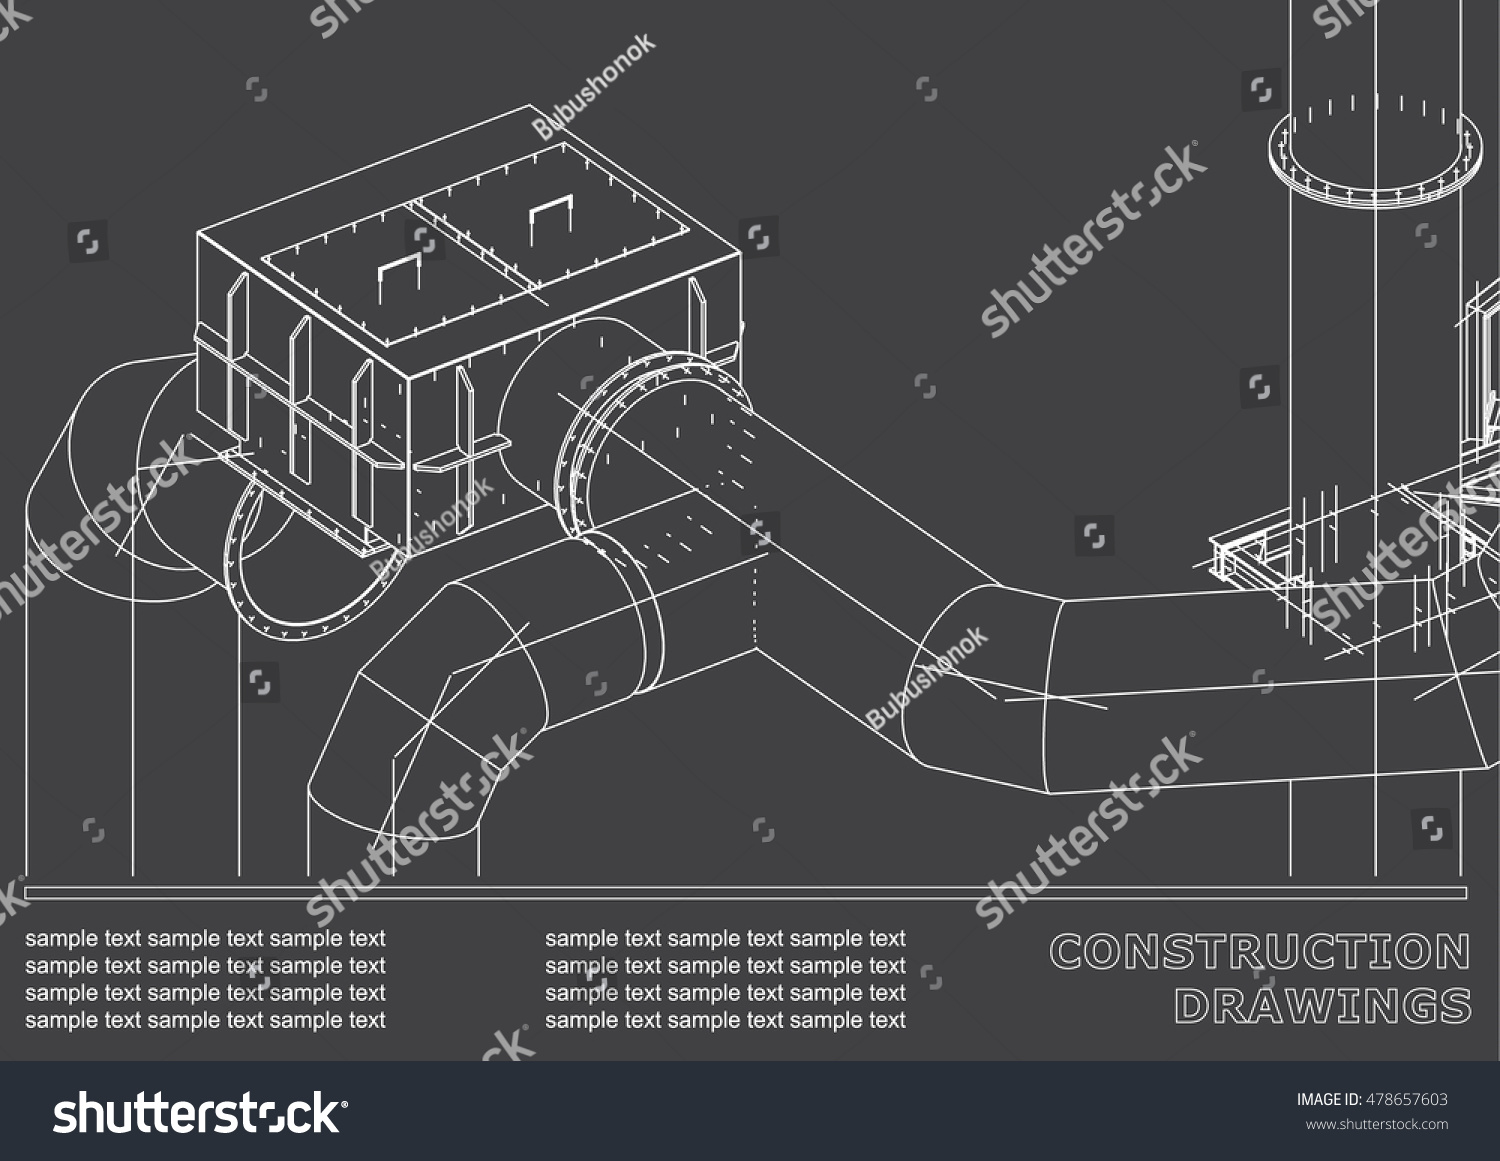 Drawings steel structures pipes 3d blueprint vectores en stock drawings of steel structures pipes 3d blueprint of steel structures cover background malvernweather Choice Image